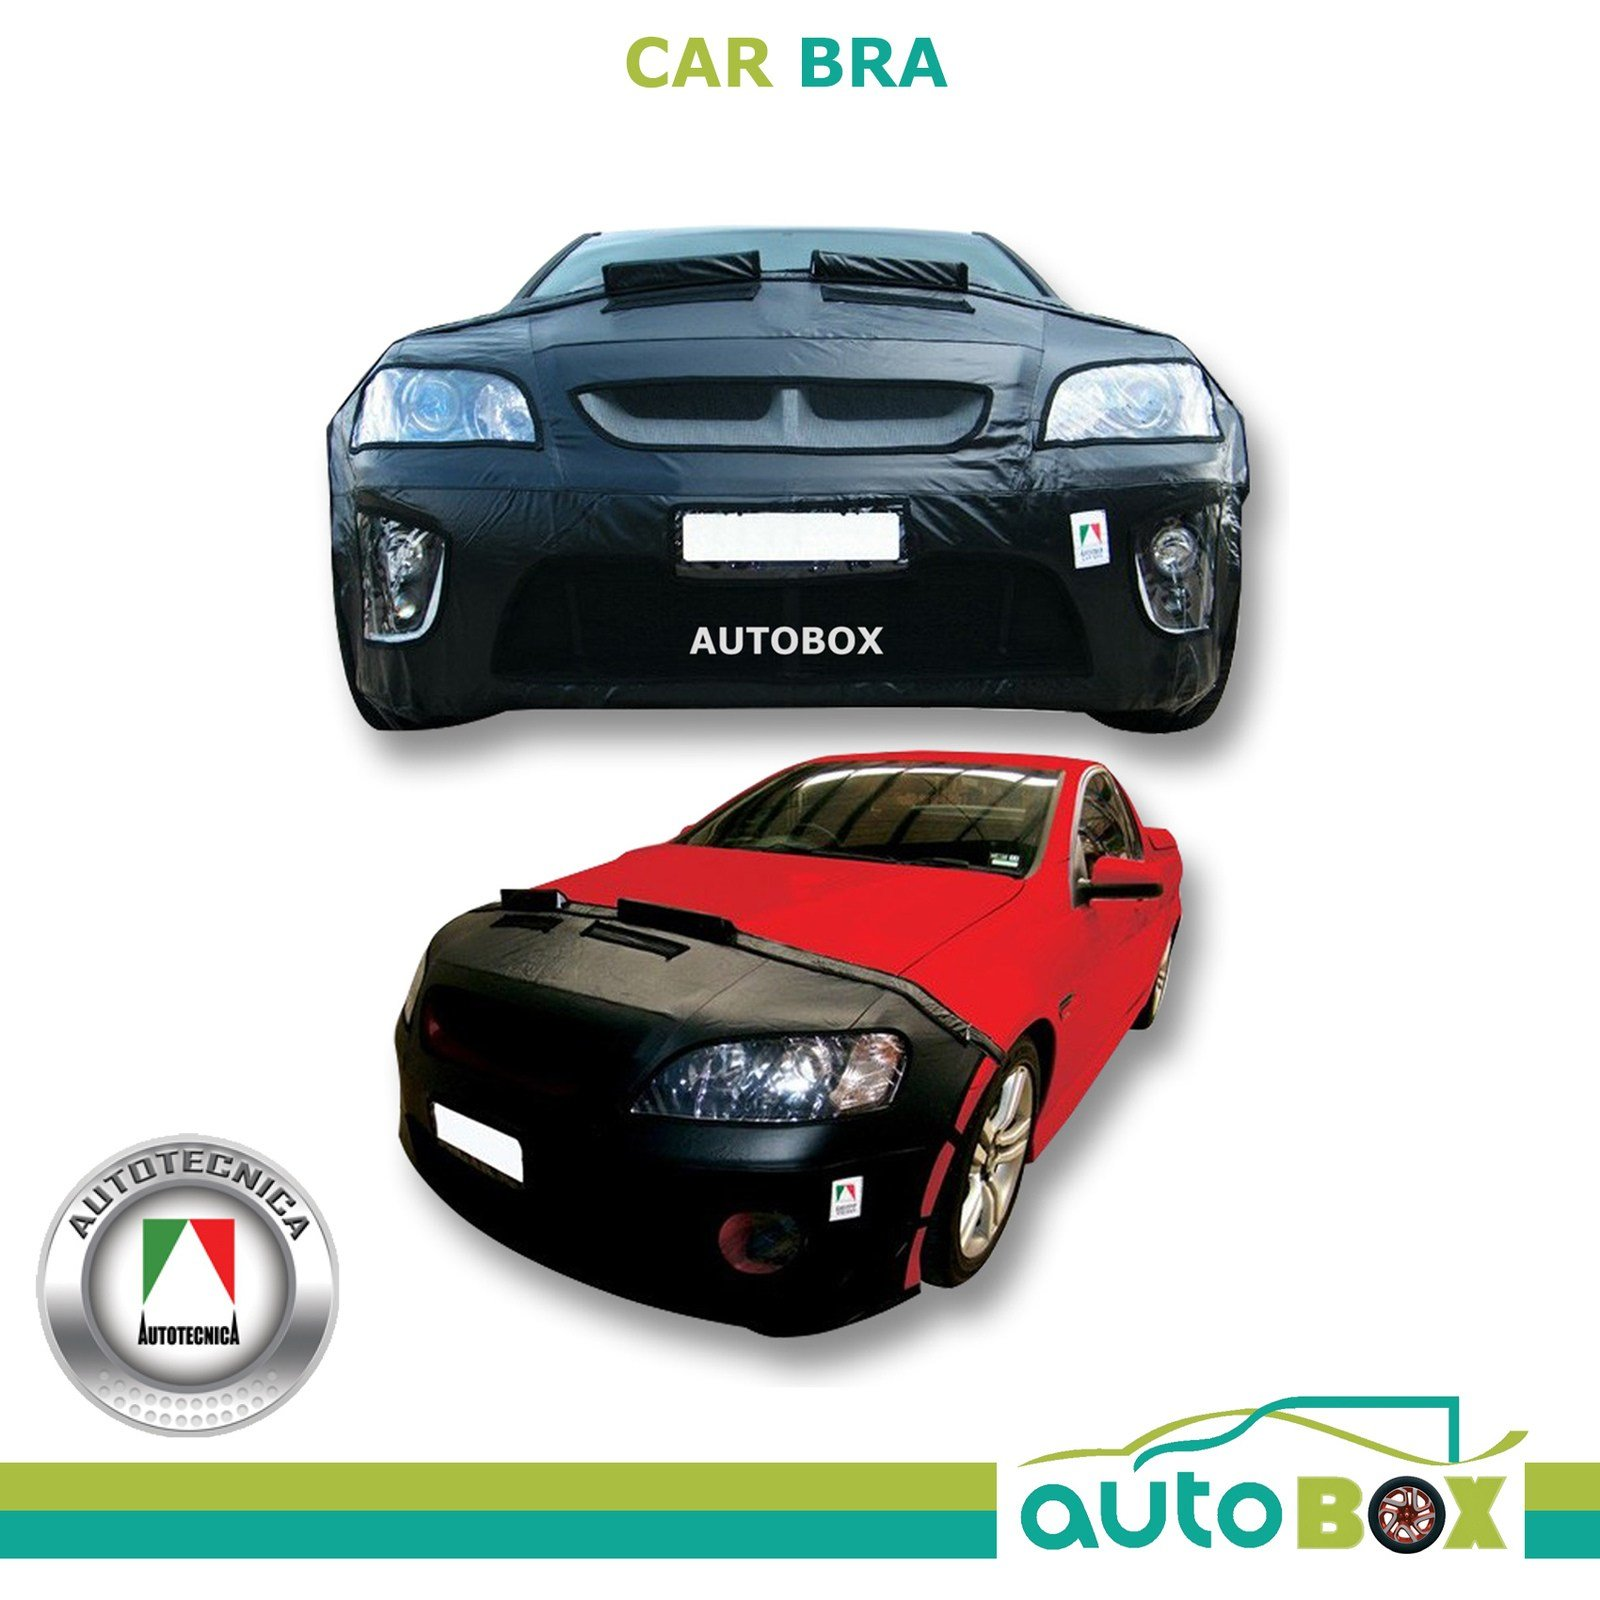 New Car Bra Holden Commodore Ve Hsv Clubsport Gts Maloo Series 1 I Black New On This Month